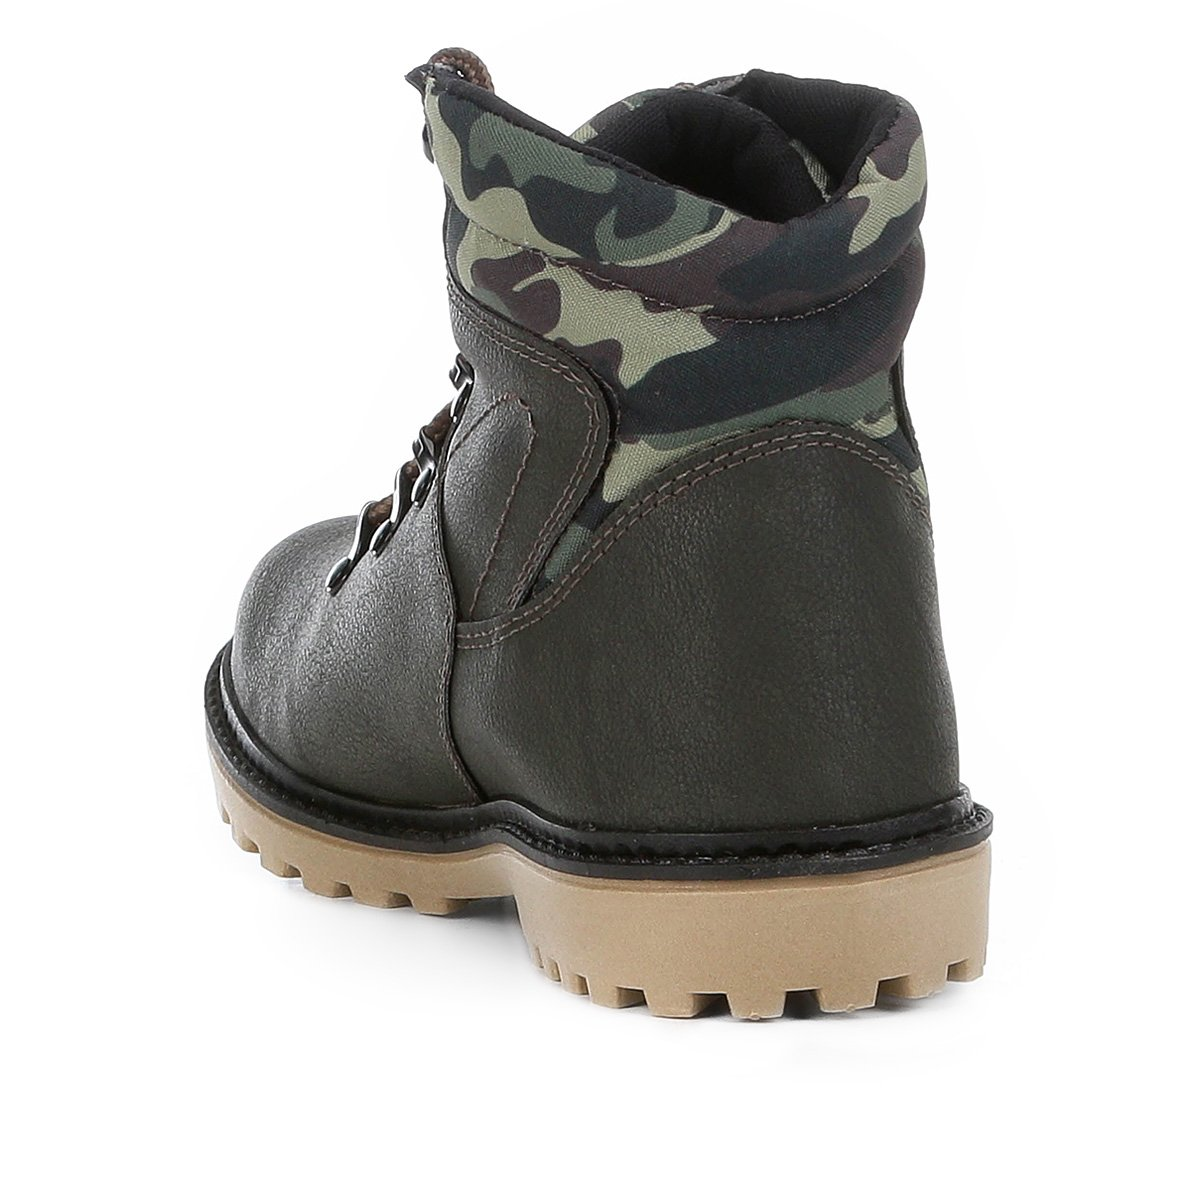 Walkabout Coturno Bota Coturno Verde Masculina Verde Masculina Bota Camuflada Walkabout Camuflada gdq0dY